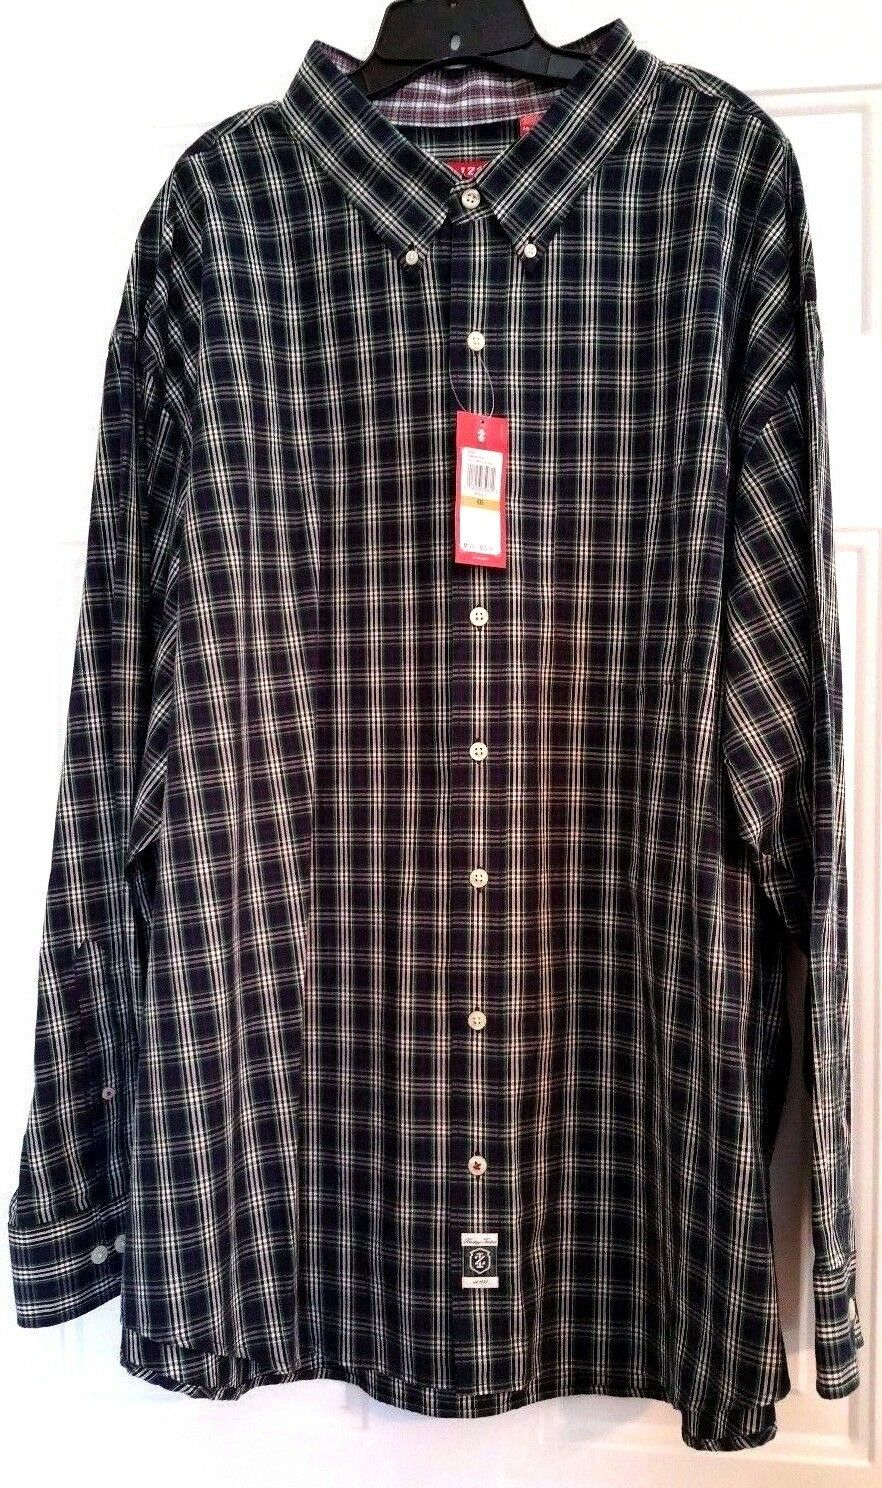 Izod Mens Big & Tall Plaid Shirt Size 4XL NWT  Shetland Tartan bluee Green